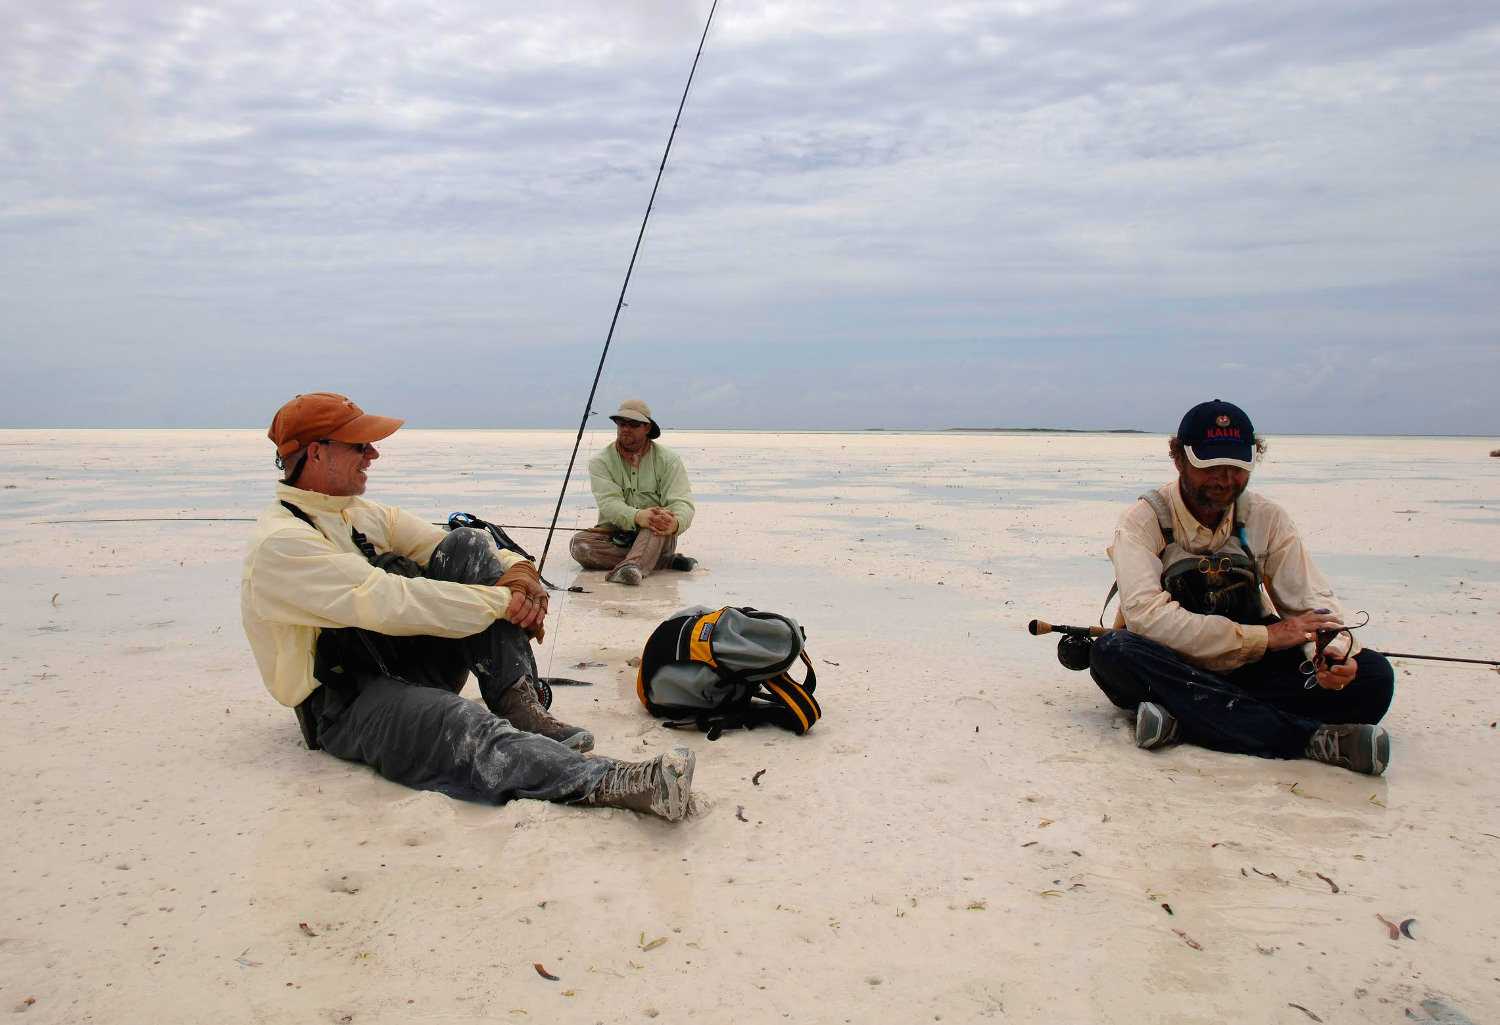 Fly fishing saltwater tides determine success toflyfish for Best saltwater fishing times